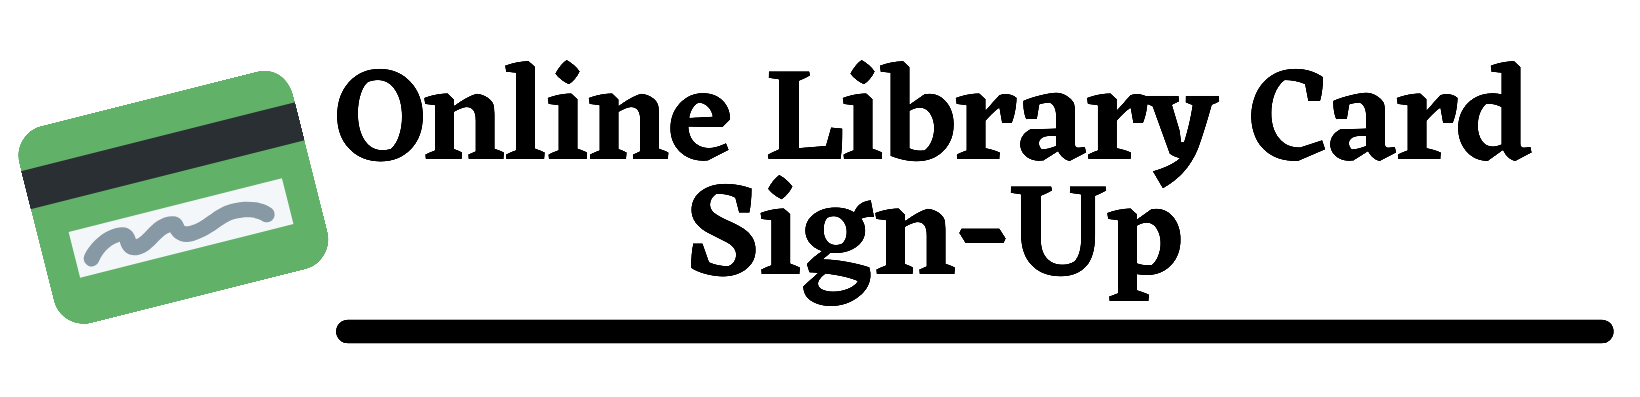 Online Library Card sign-up